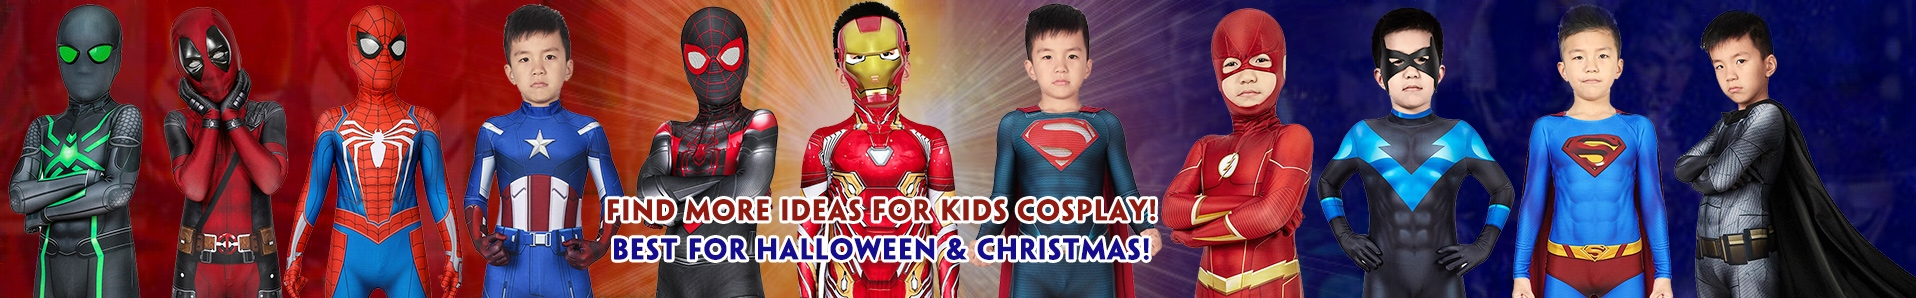 kids cosplay costumes and suits